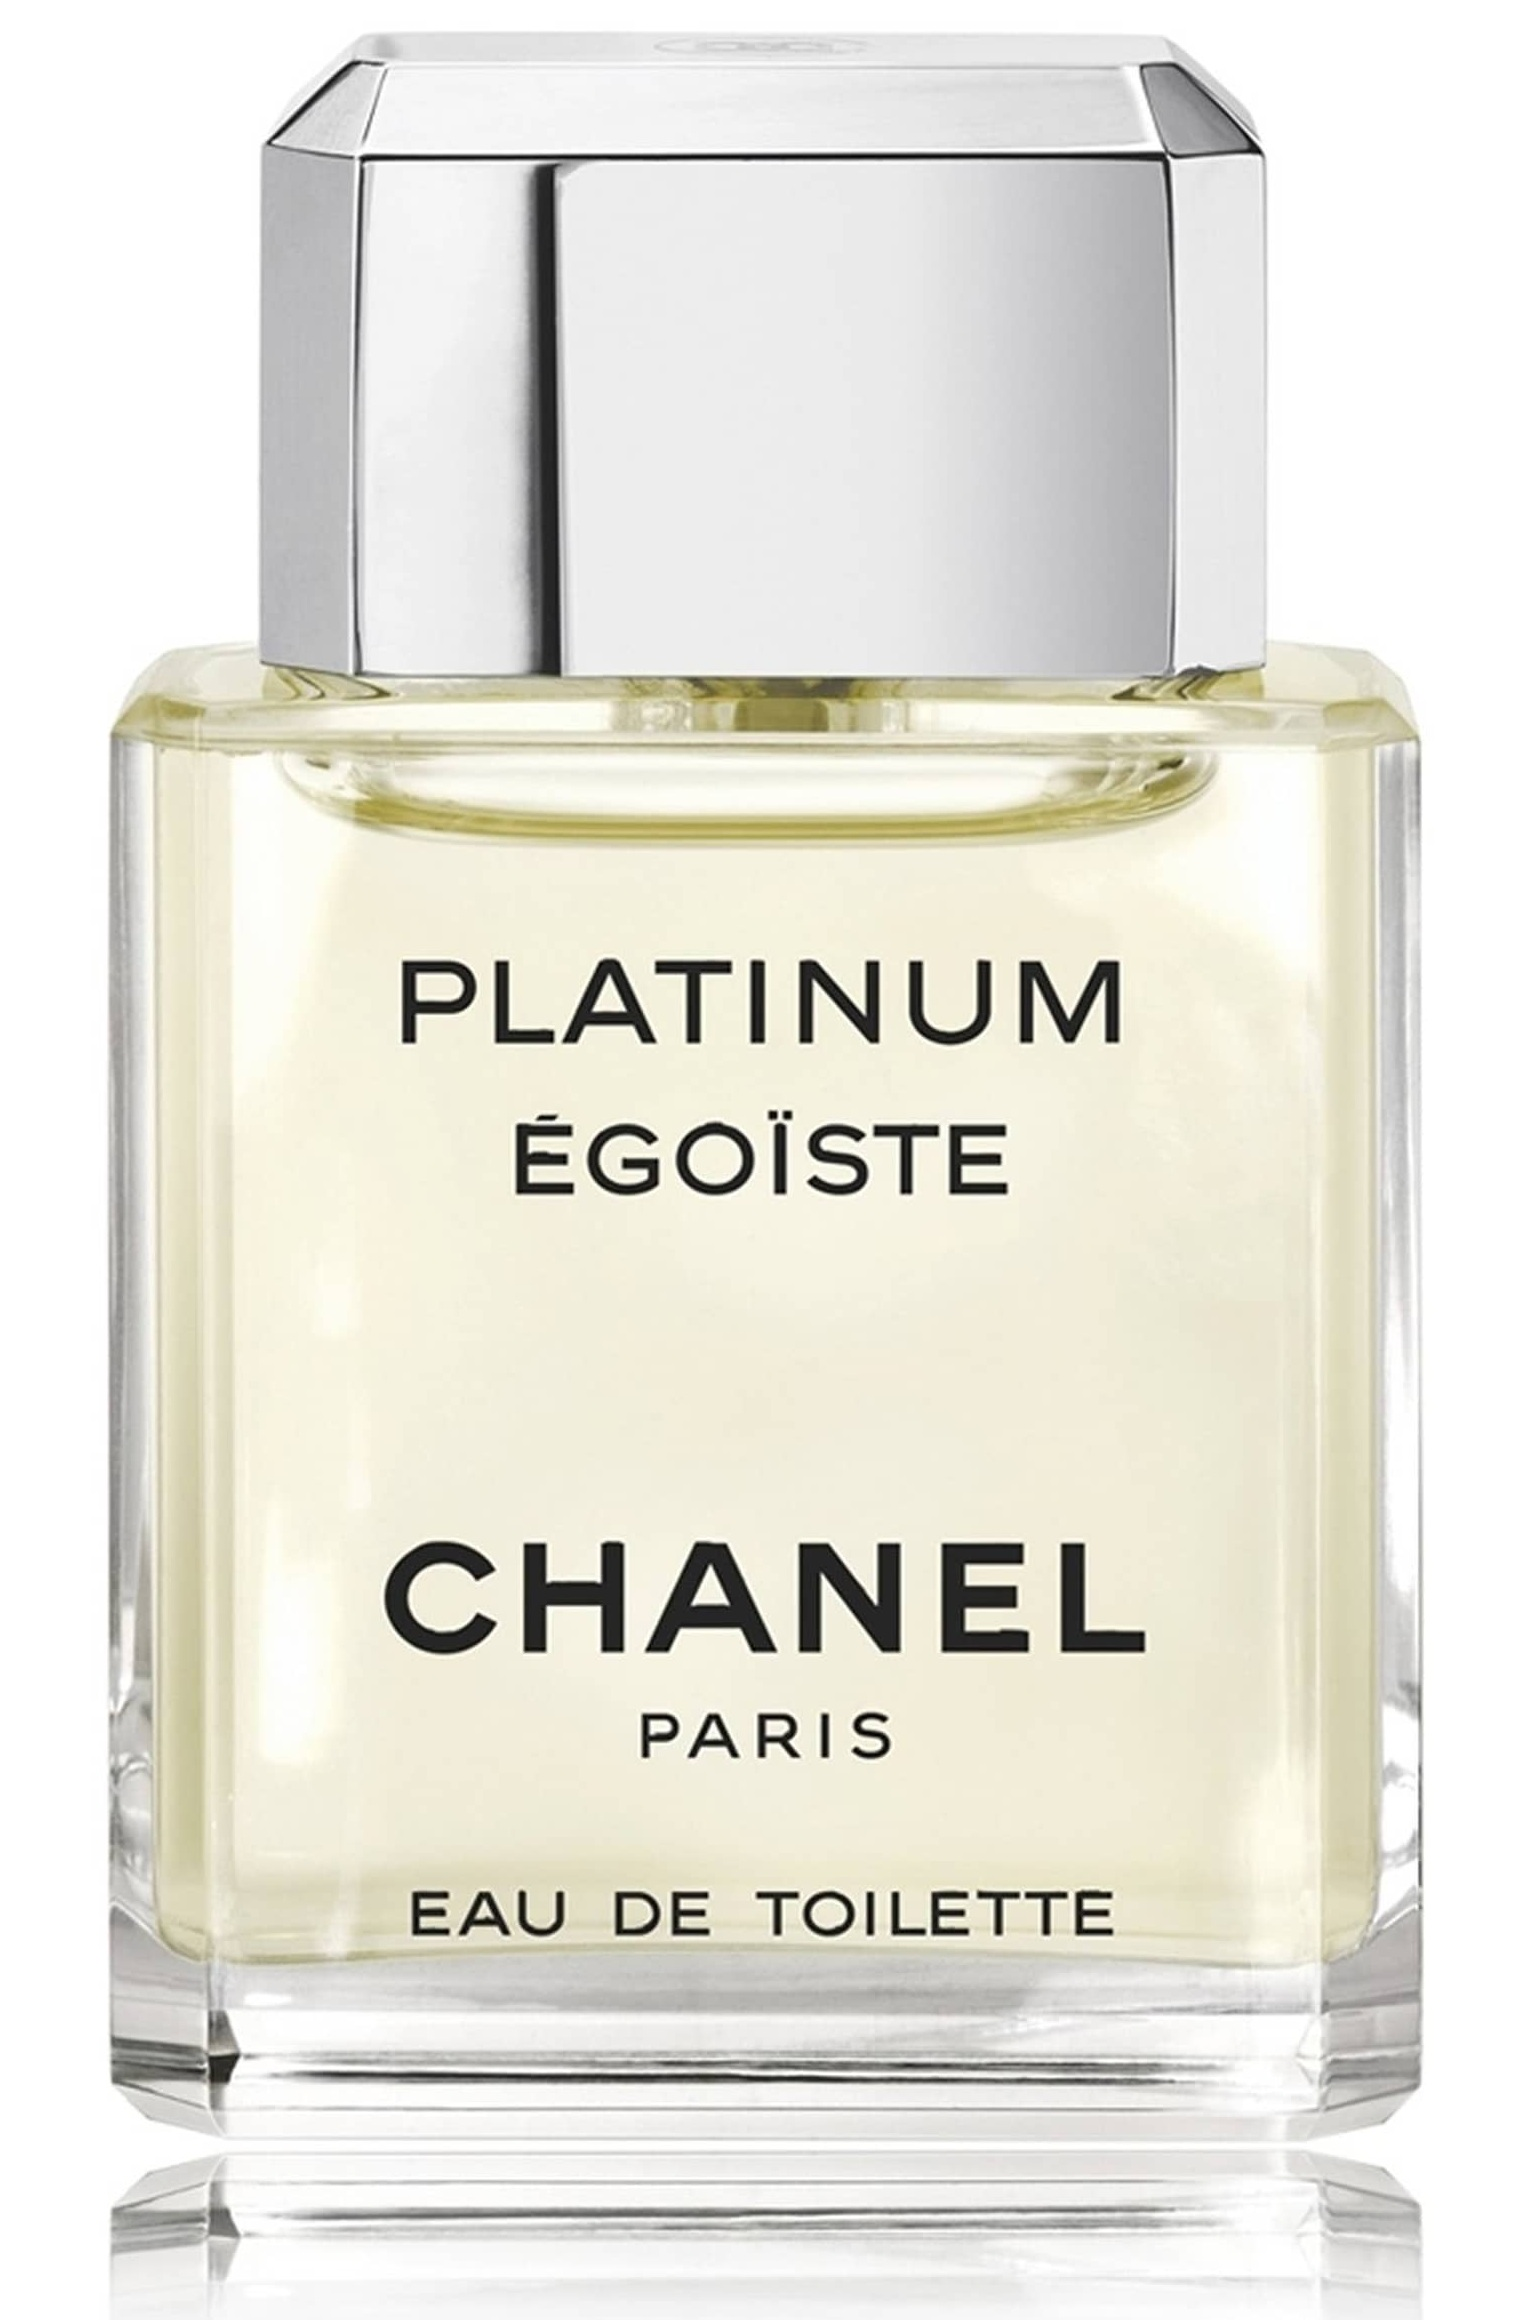 Chanel Platinum ÉGoiste Eau De Toilette Spray  Mens Cologne